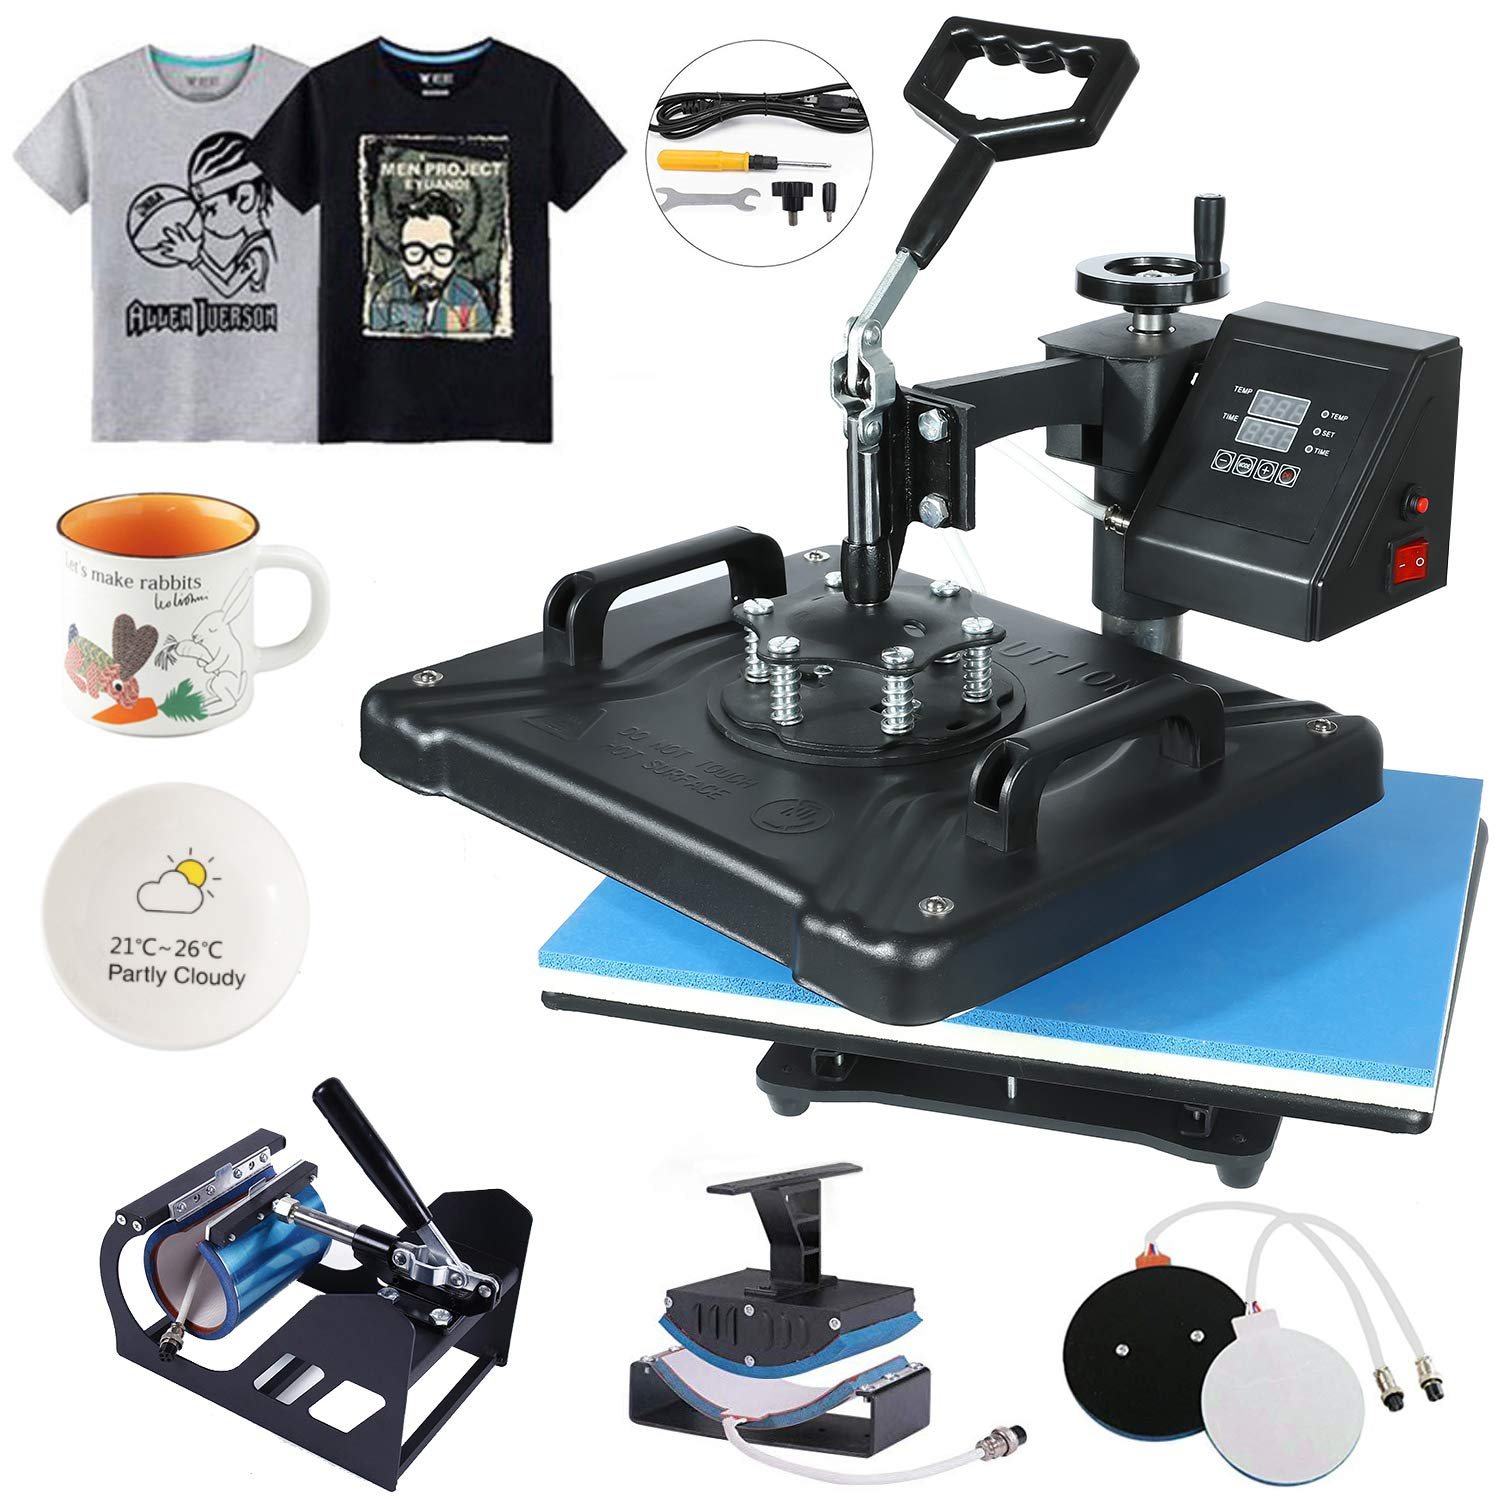 HikeGeek 5 in 1 Heat Press Machine 12 X 15 inch Professional Digital Transfer Sublimation Swing-Away for Hat Mug Plate Cap T-Shirt